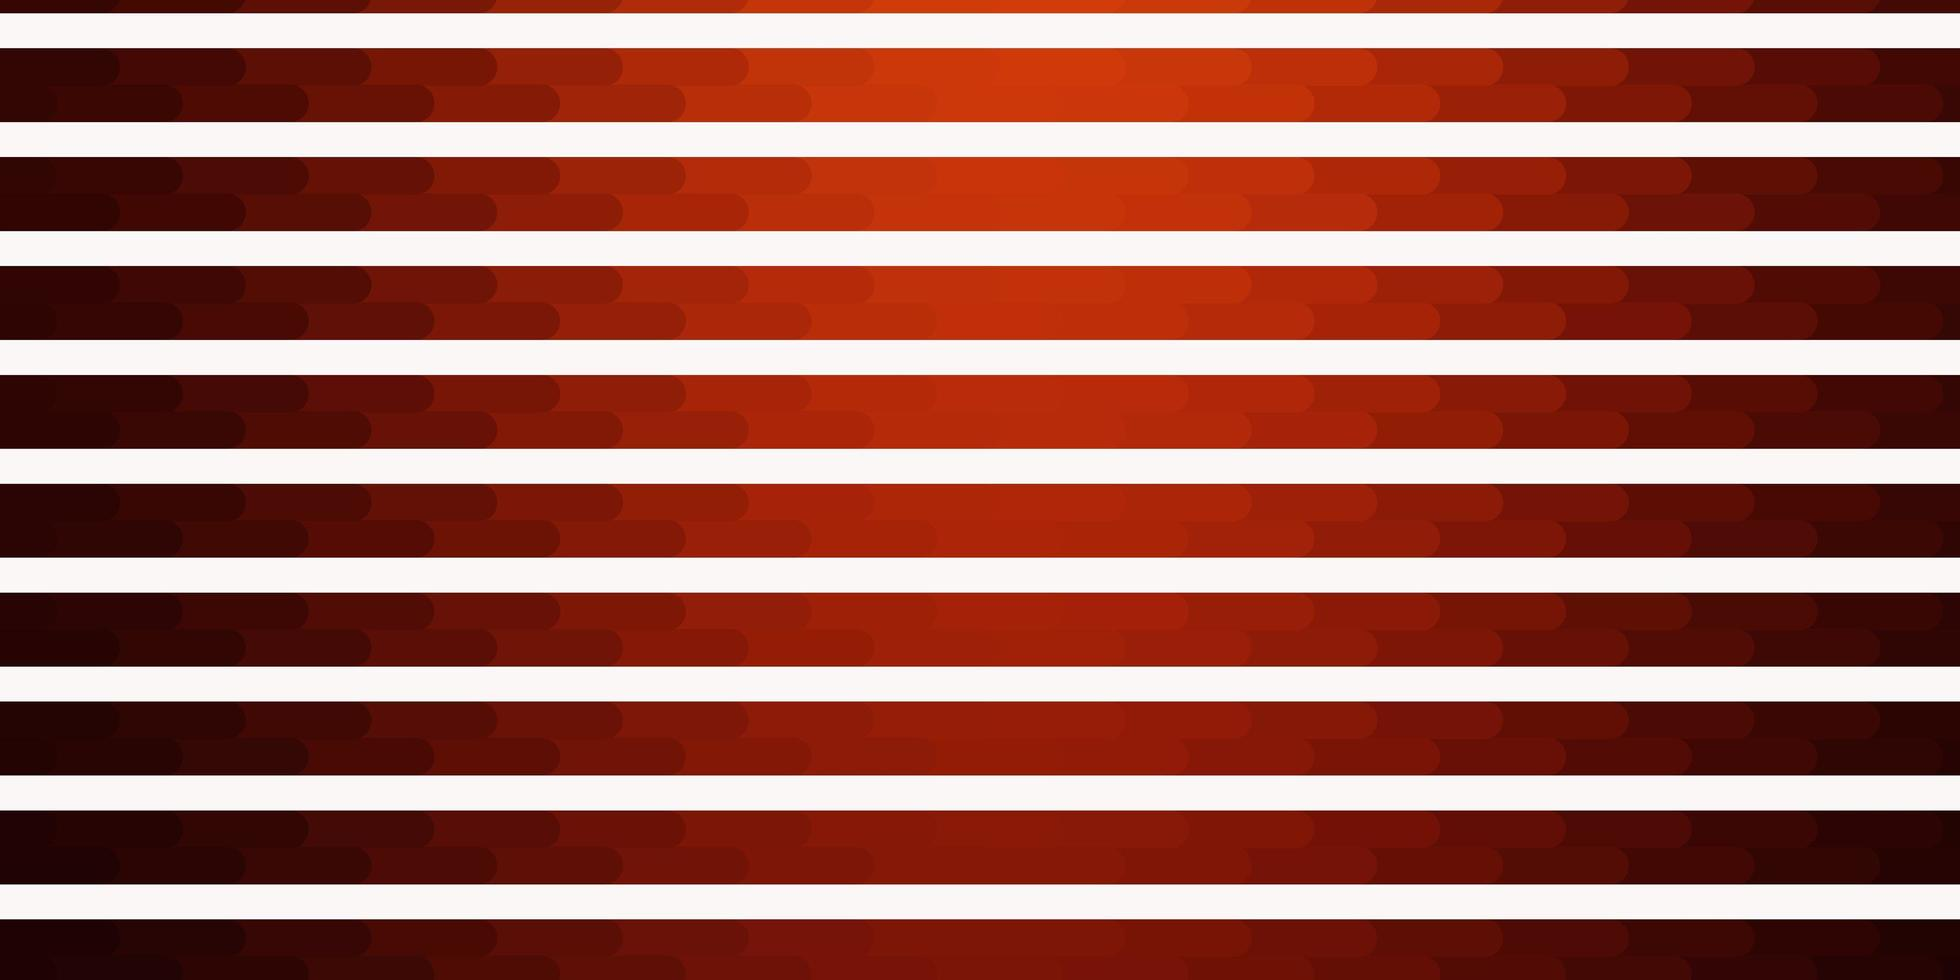 Light Red vector pattern with lines.